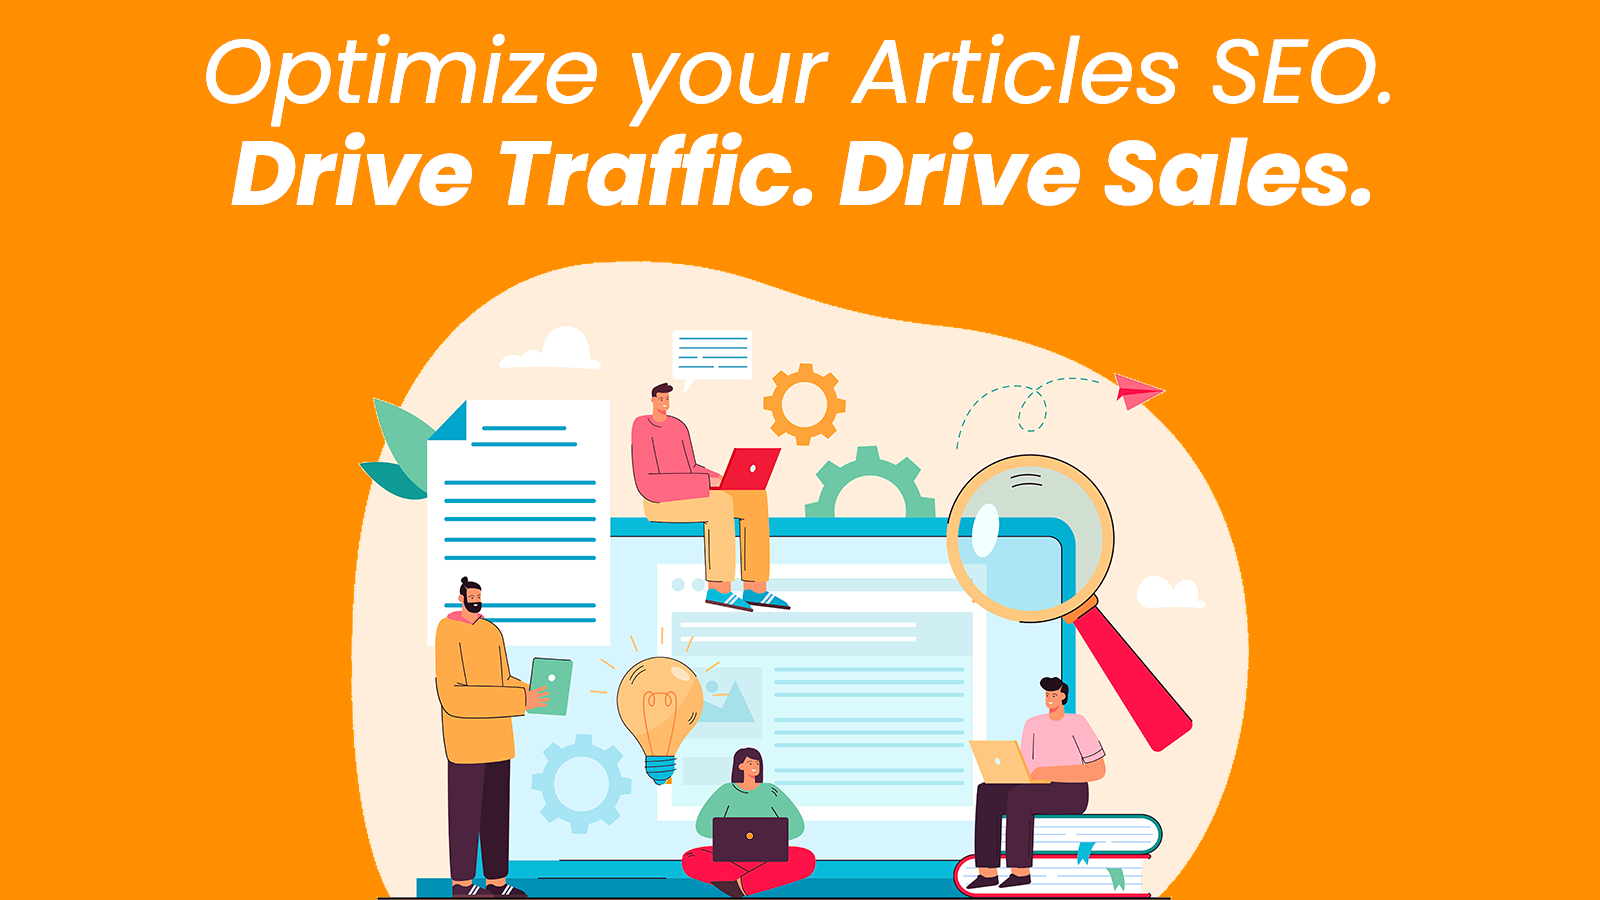 Optimize Blog & Articles SEO to drive traffic and sales.